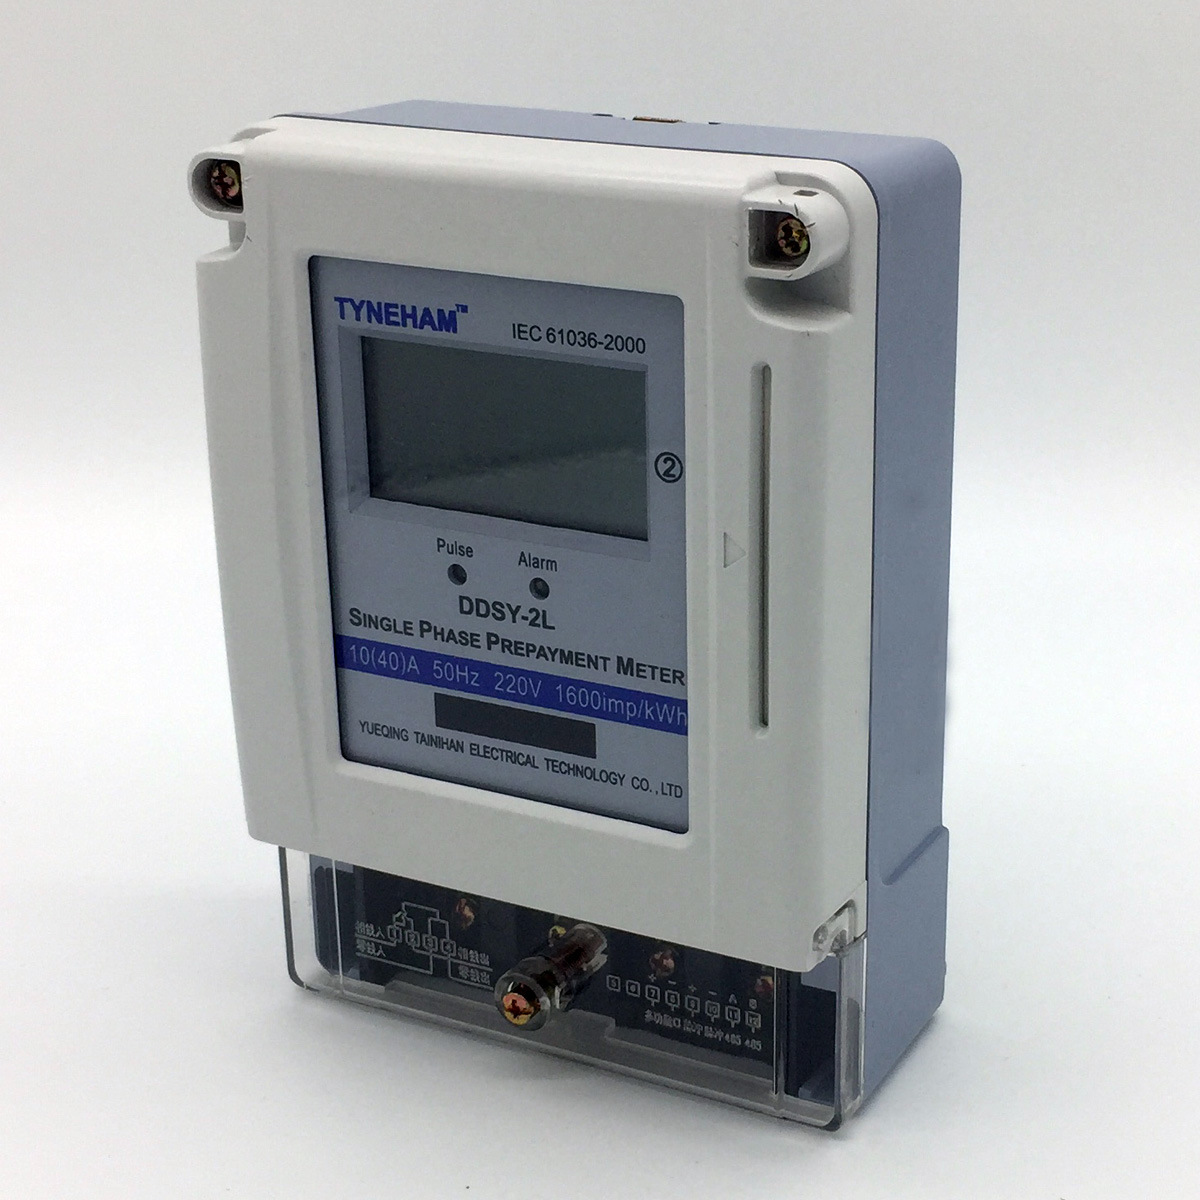 Ddsy-2L Series Single Phase Electronic Prepaid Energy Meter pictures & photos